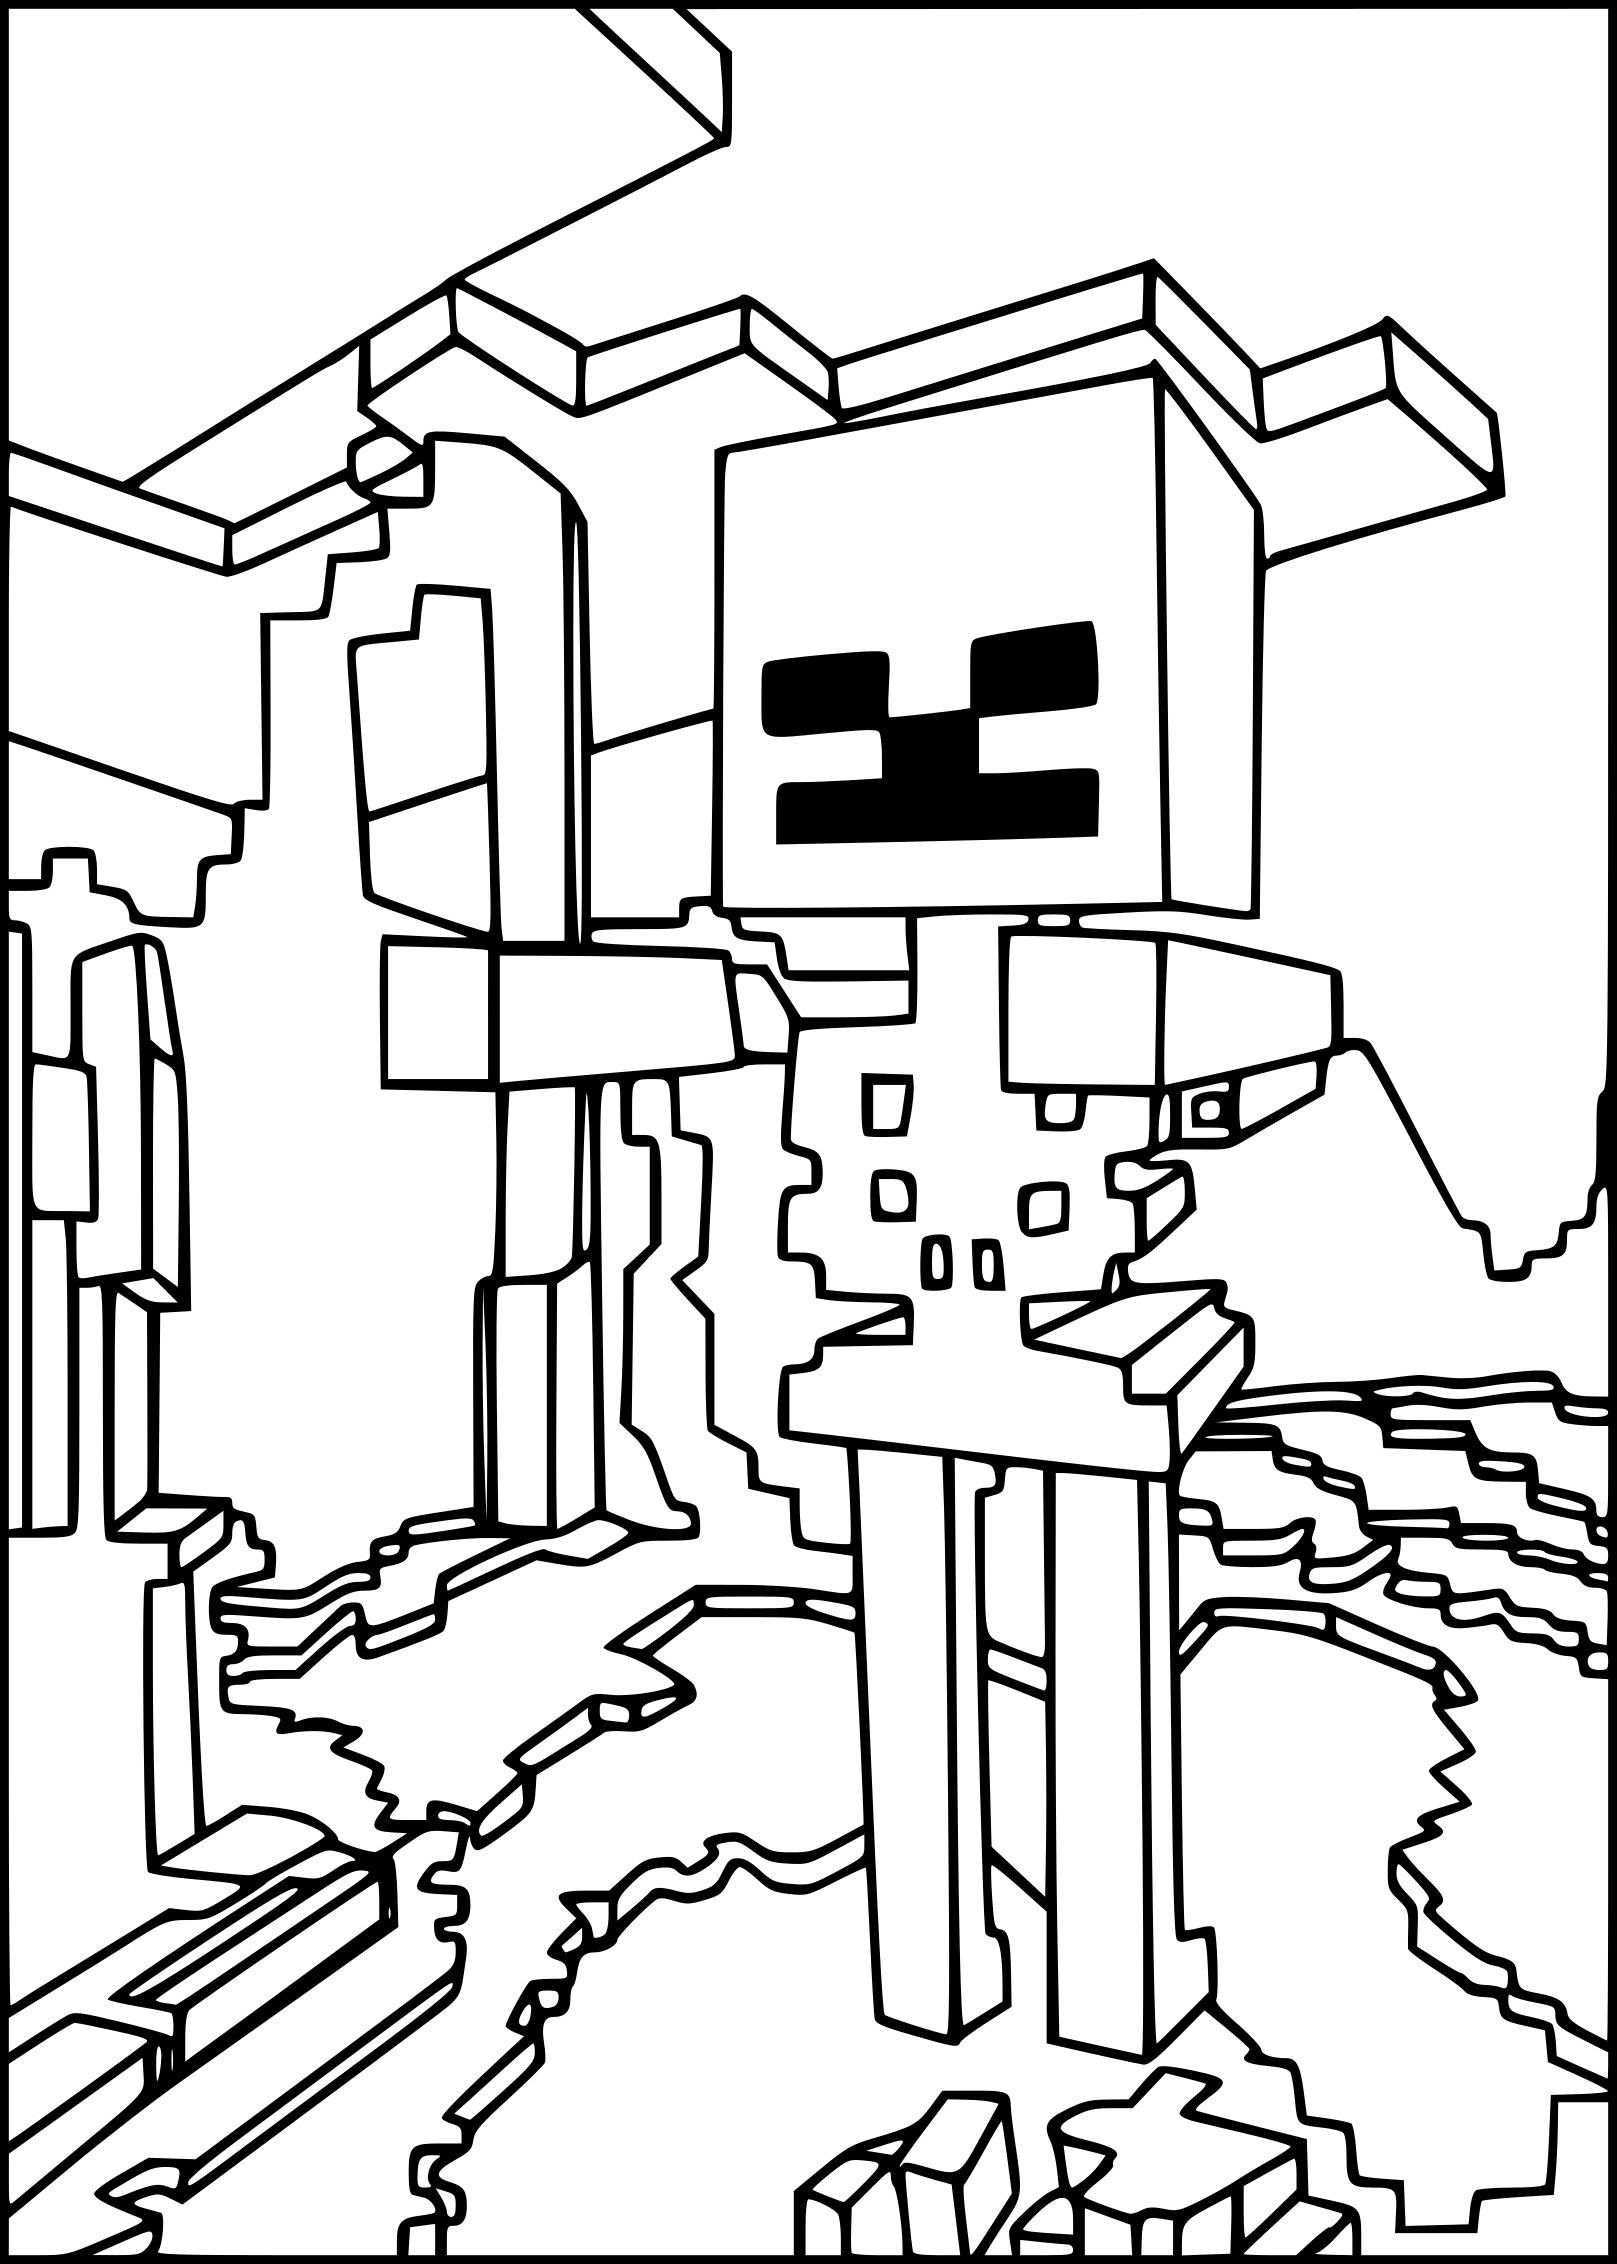 Jeux De Coloriage De Zombie Elegant Inspiration Coloriage Squelette Minecraft Imprimer Minecraft Skeleton Minecraft Coloring Pages Coloring Pages